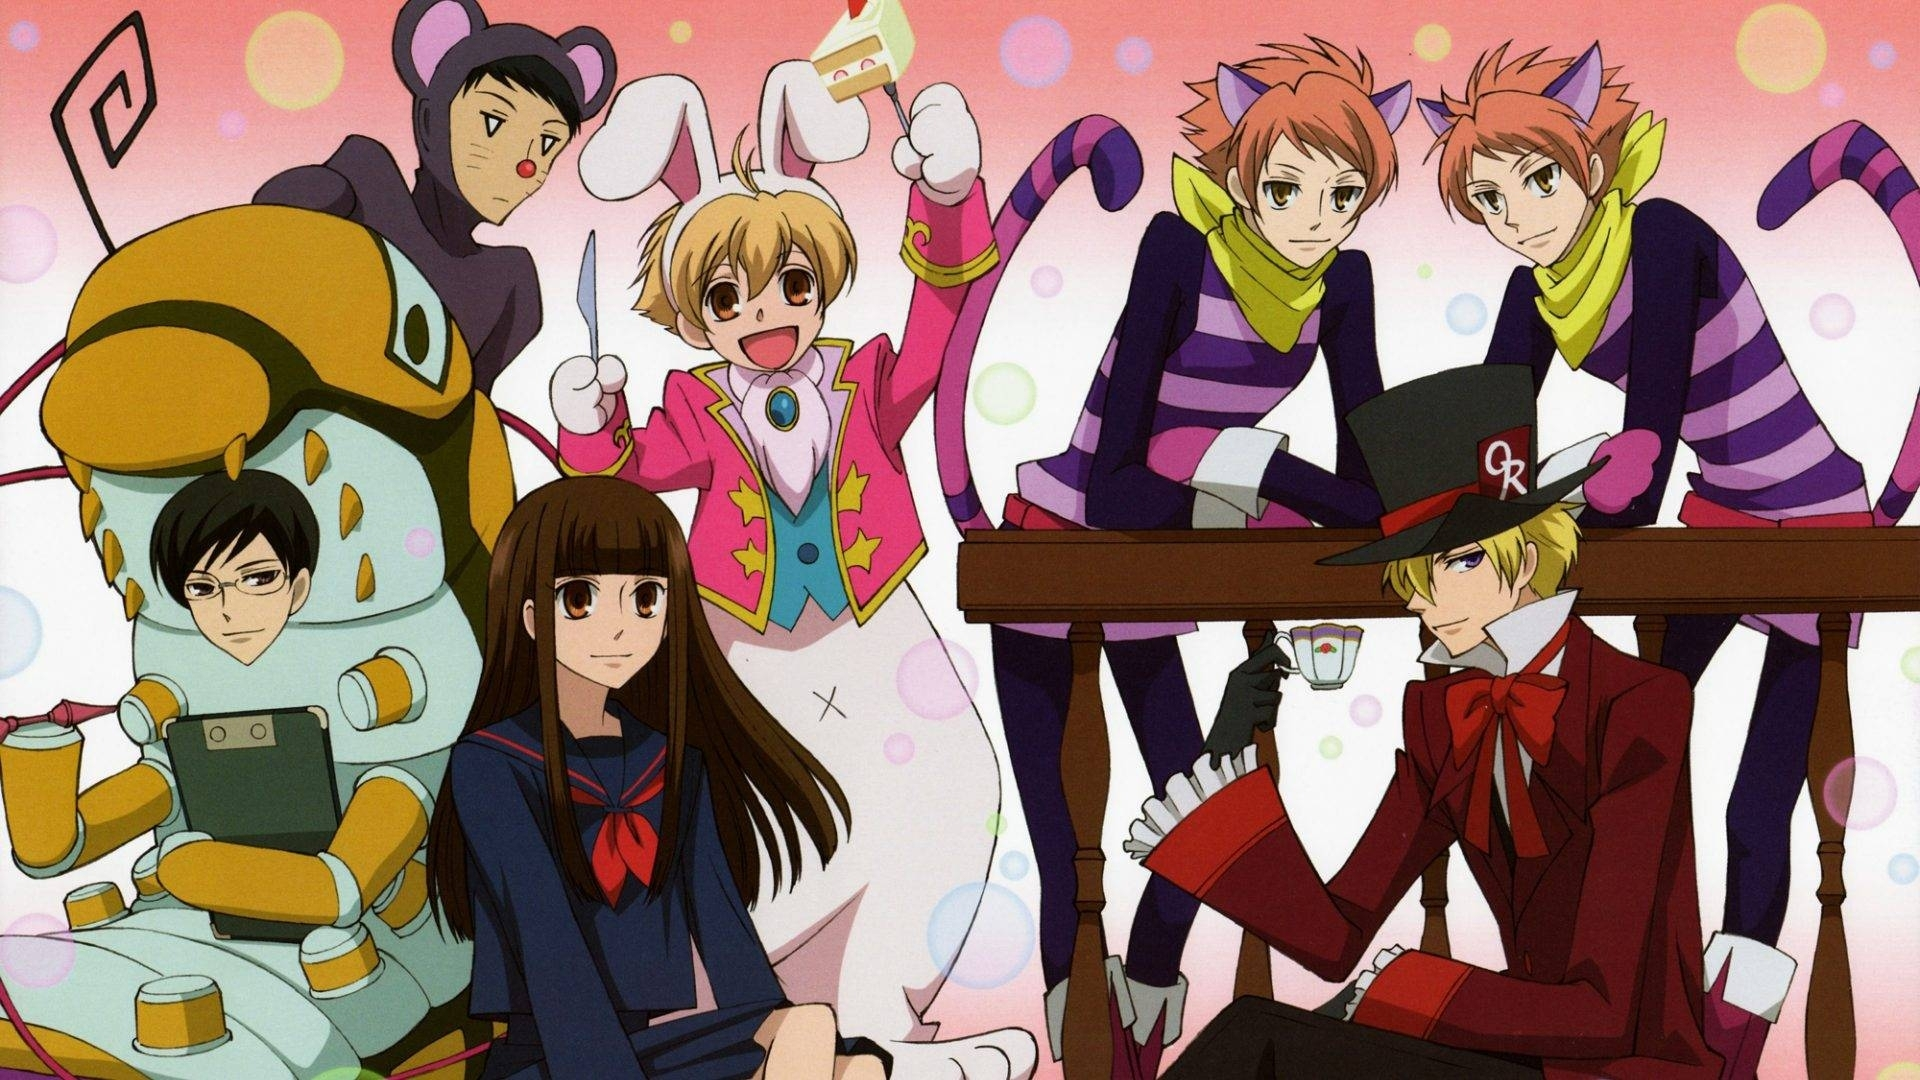 ouran high school host club wallpapers - wallpaper cave